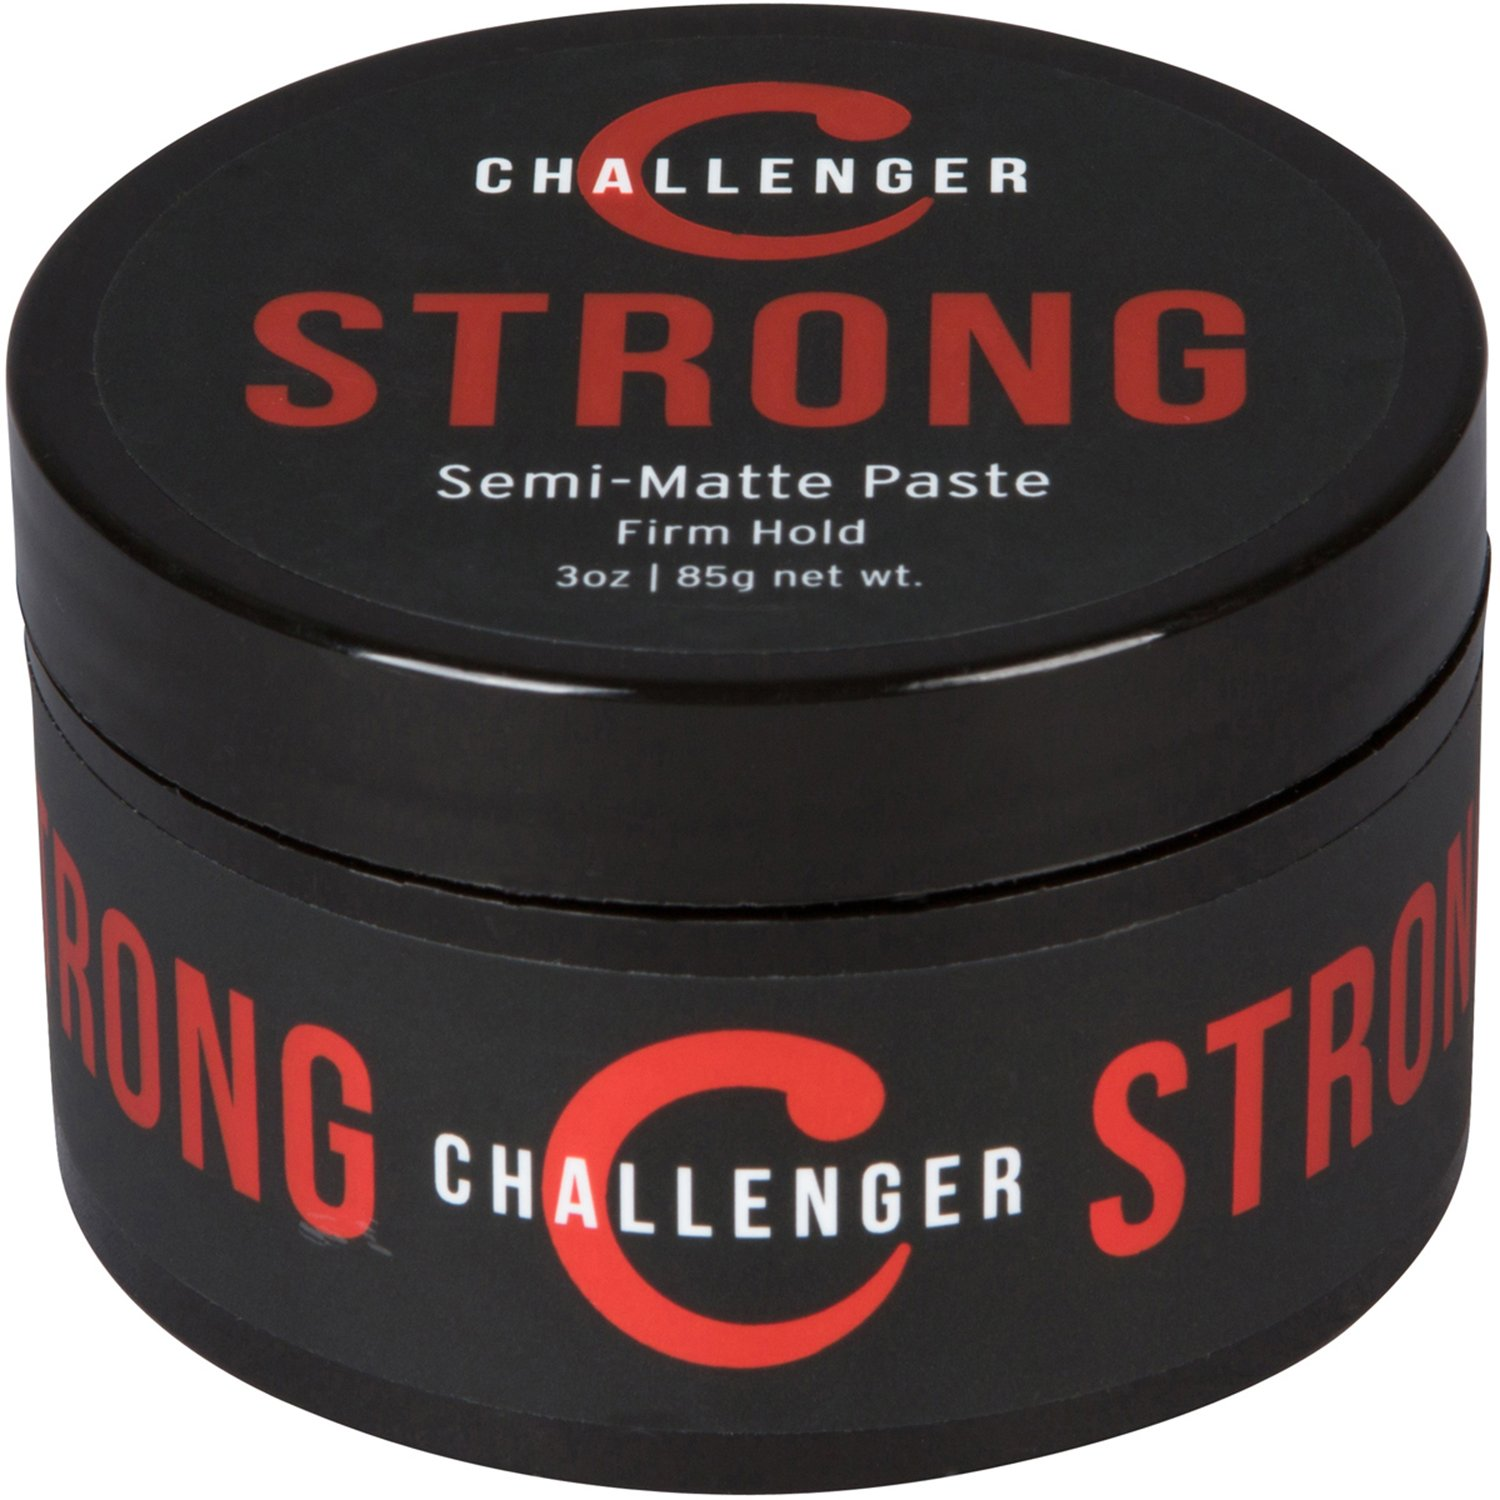 Strong Semi-Matte Paste - Firm All-Day Hold, Slick Finish - Best Men's Styling Paste - Water Based, Clean & Subtle Scent, Travel Friendly. Hair Wax, Fiber, Clay, Pomade, and Cream, All In One